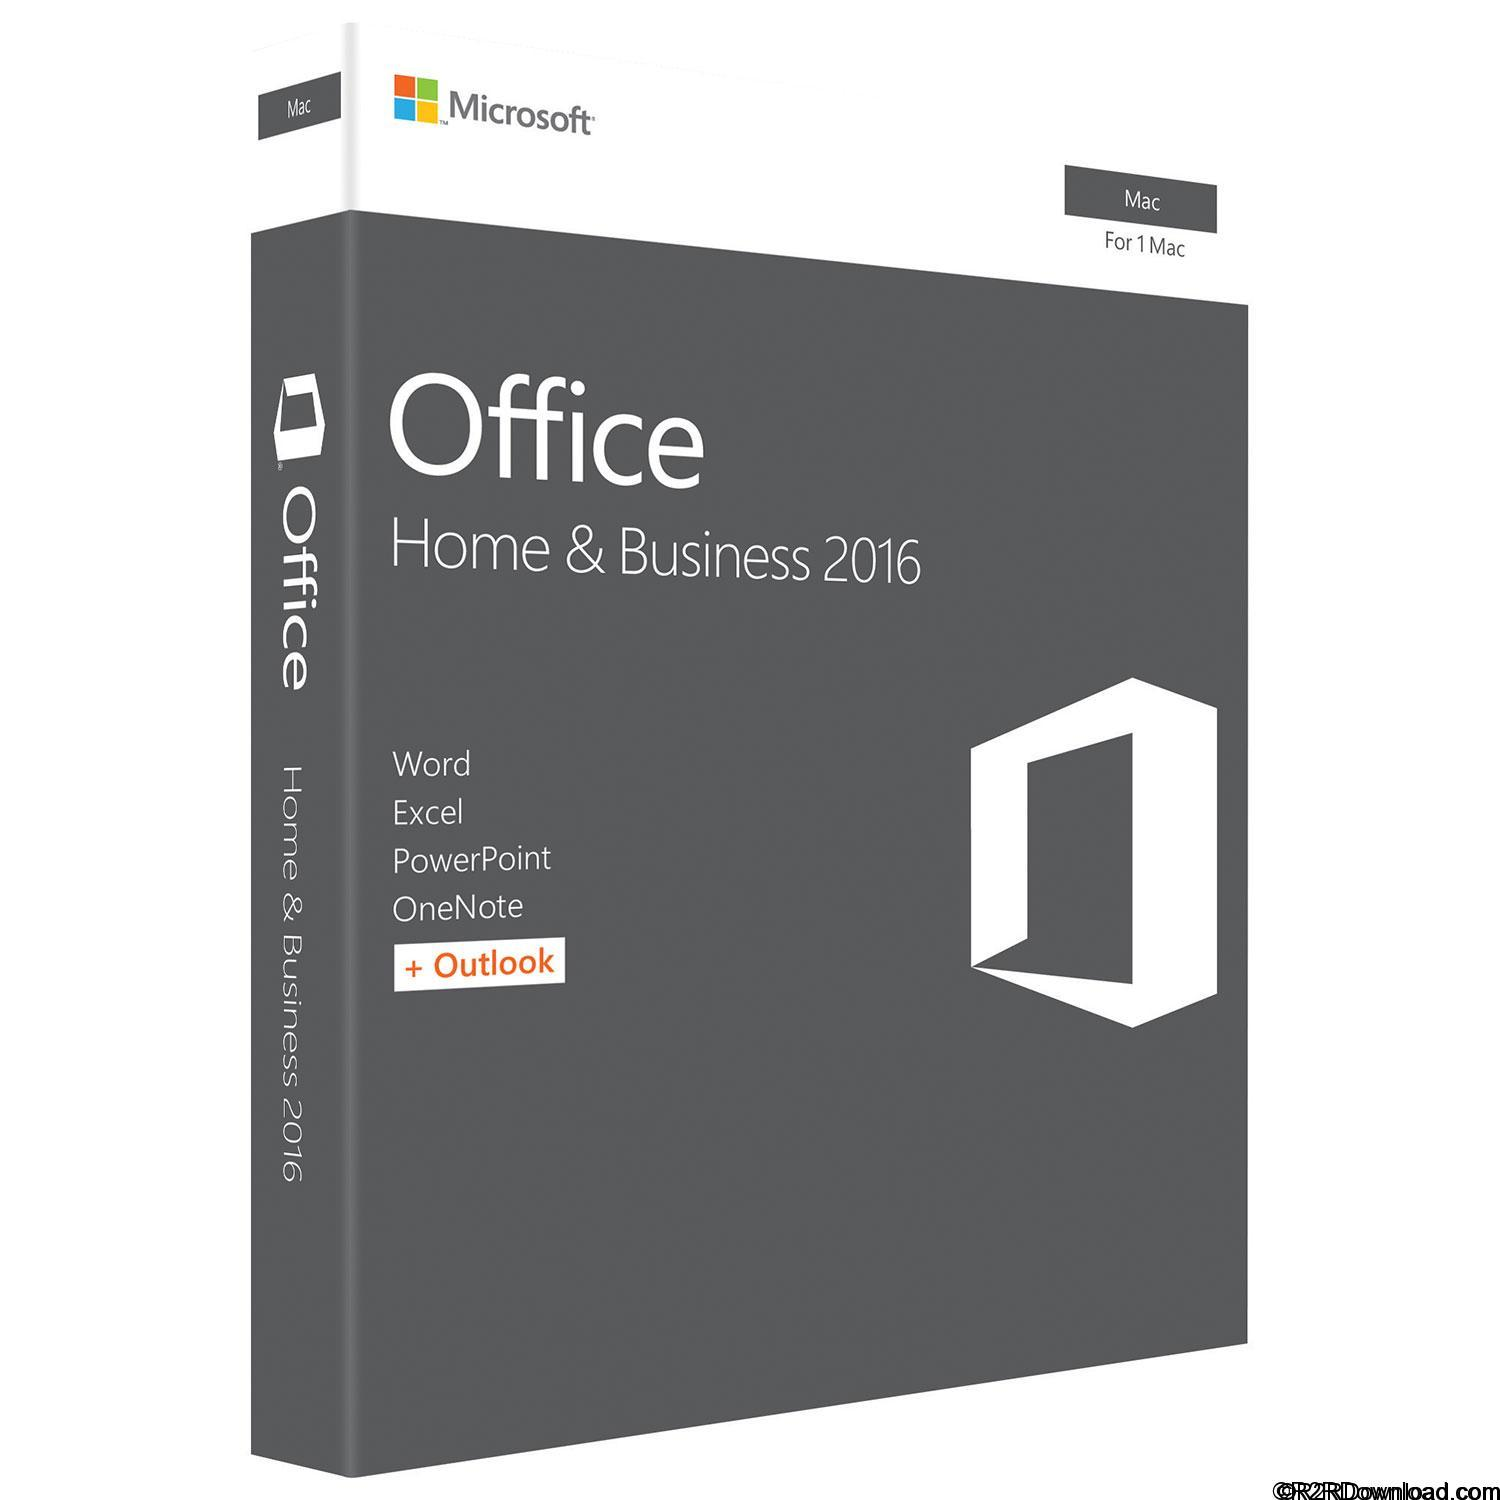 Microsoft Office 2016 for Mac 15.35.0 Free Download